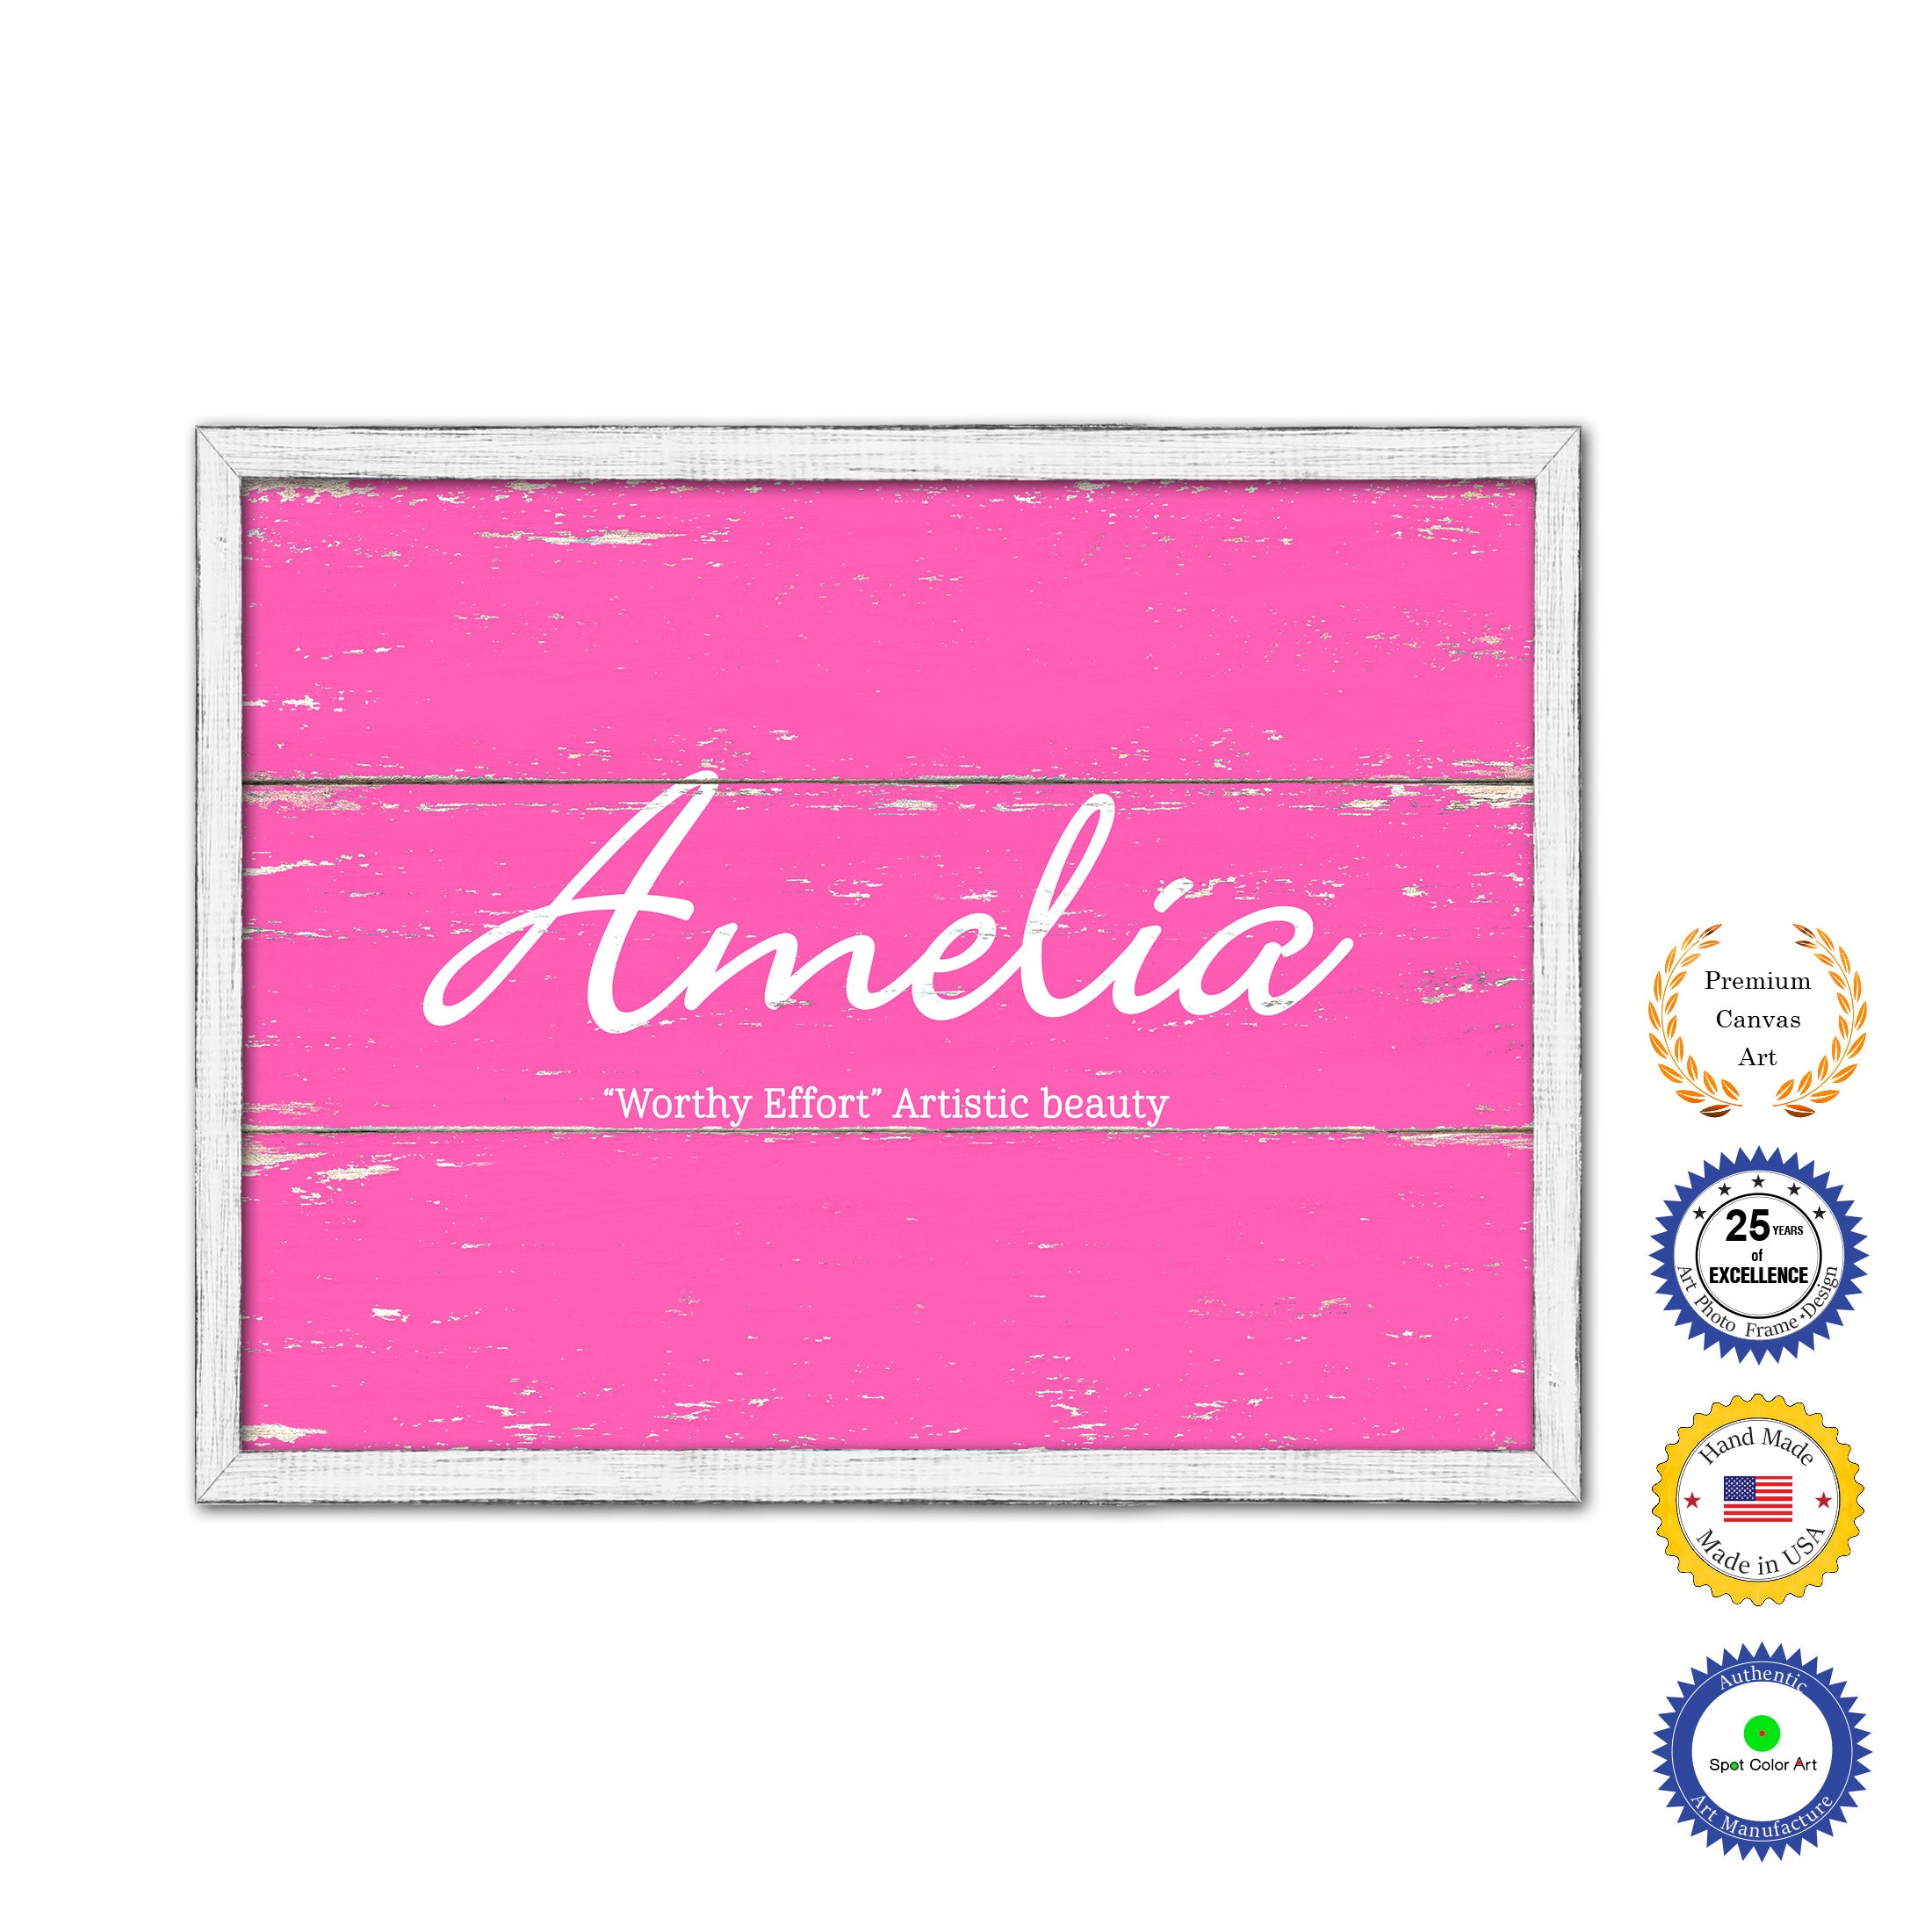 Amelia Name Plate White Wash Wood Frame Canvas Print Boutique Cottage Decor Shabby Chic